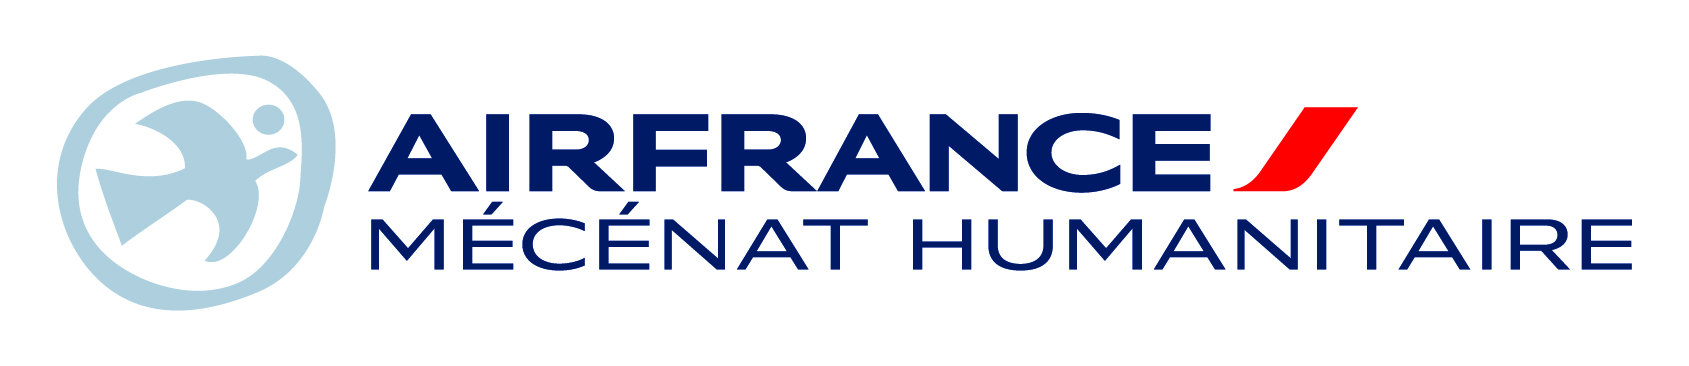 Air France mécénat humanitaire